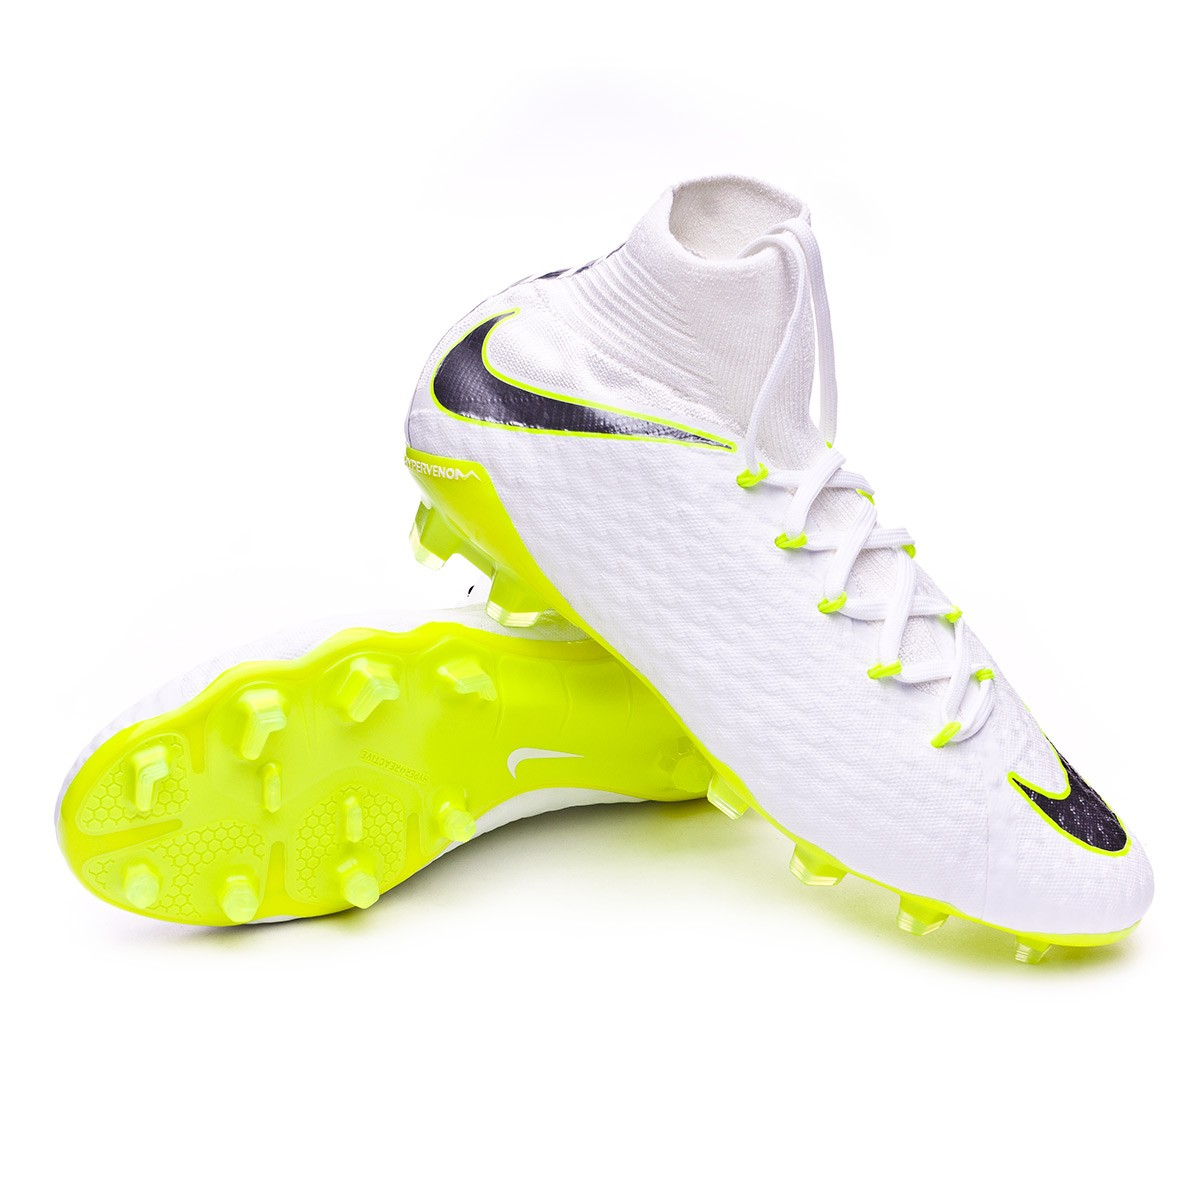 save off 0b5fb 33fa8 Nike Hypervenom Phantom III Pro DF FG Boot